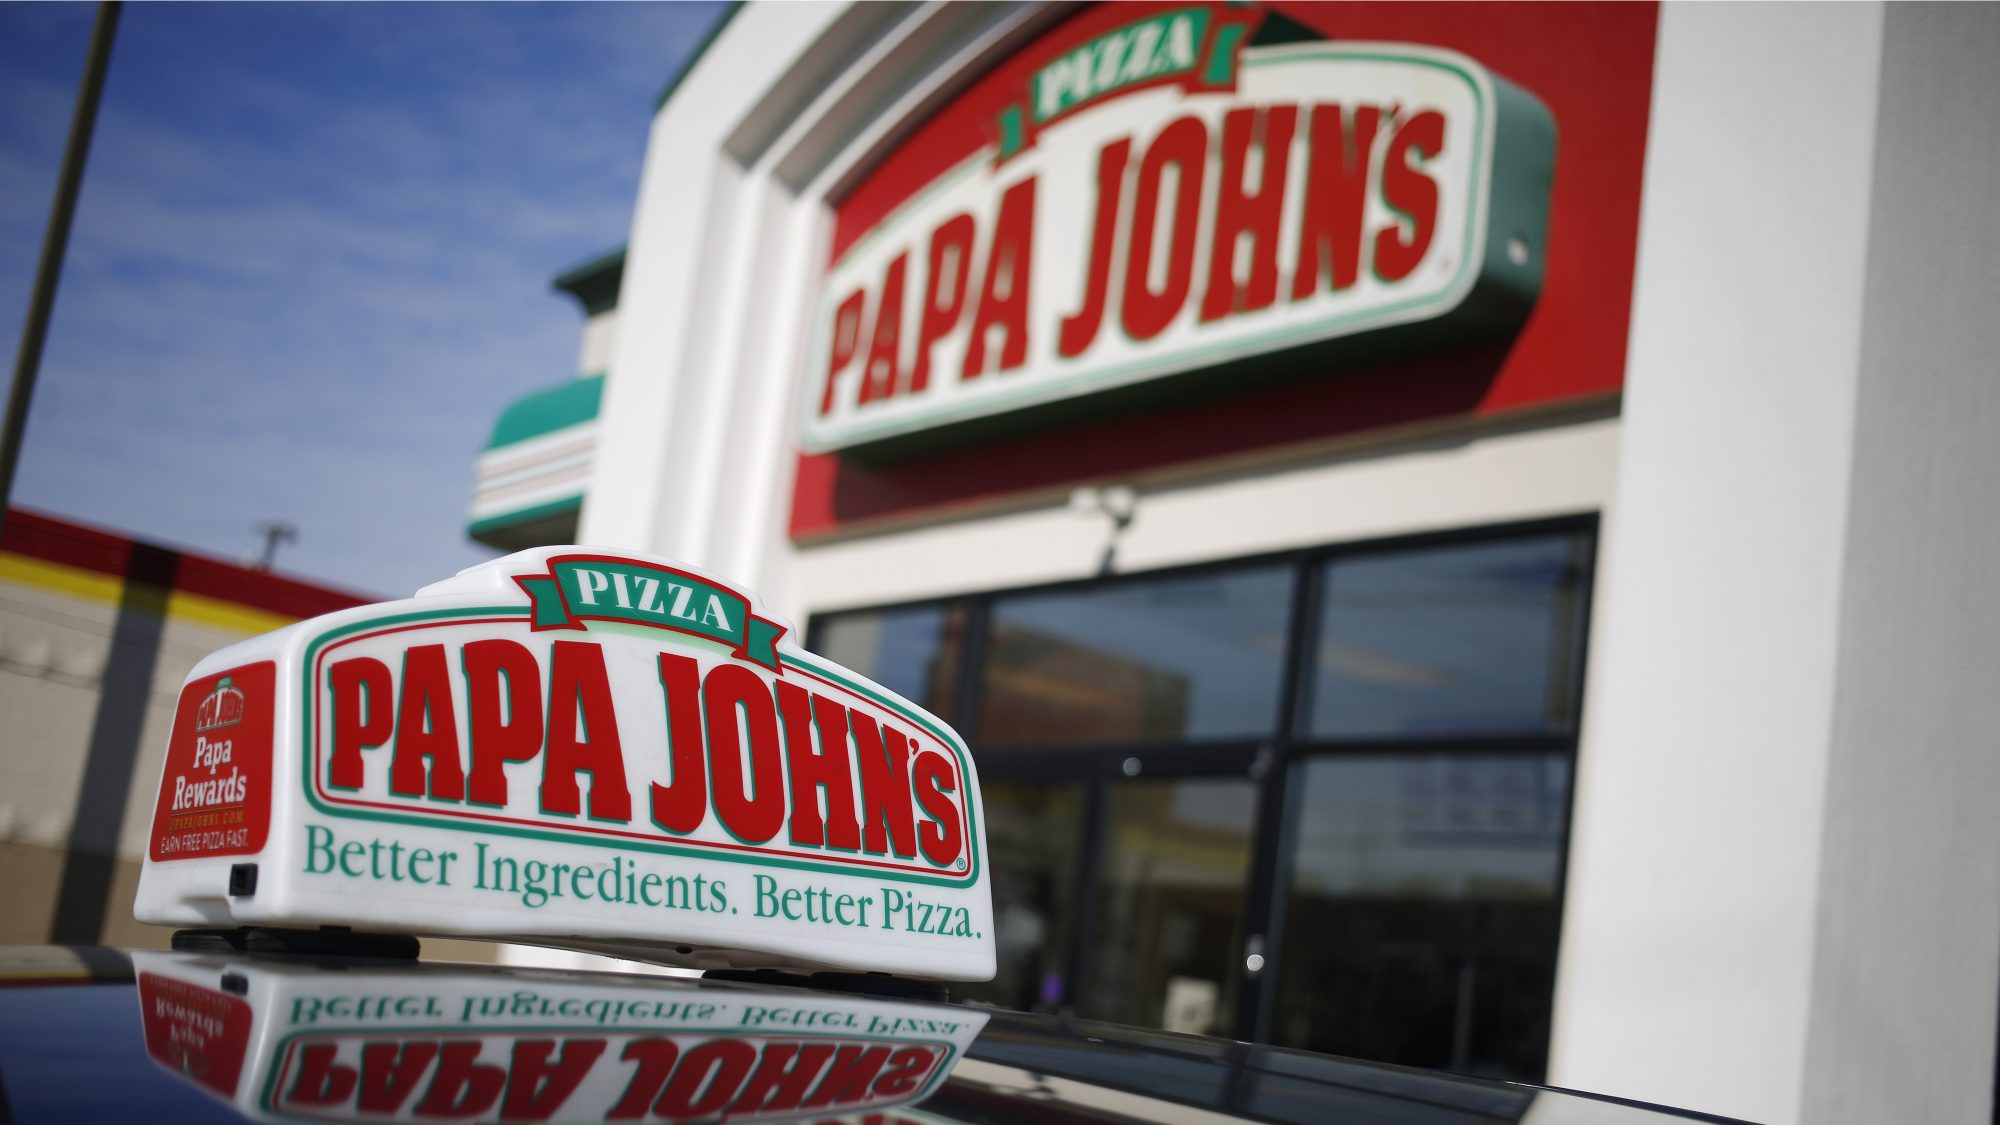 The One Pizza You Should Never Order from Papa Johns According to a Former Employee